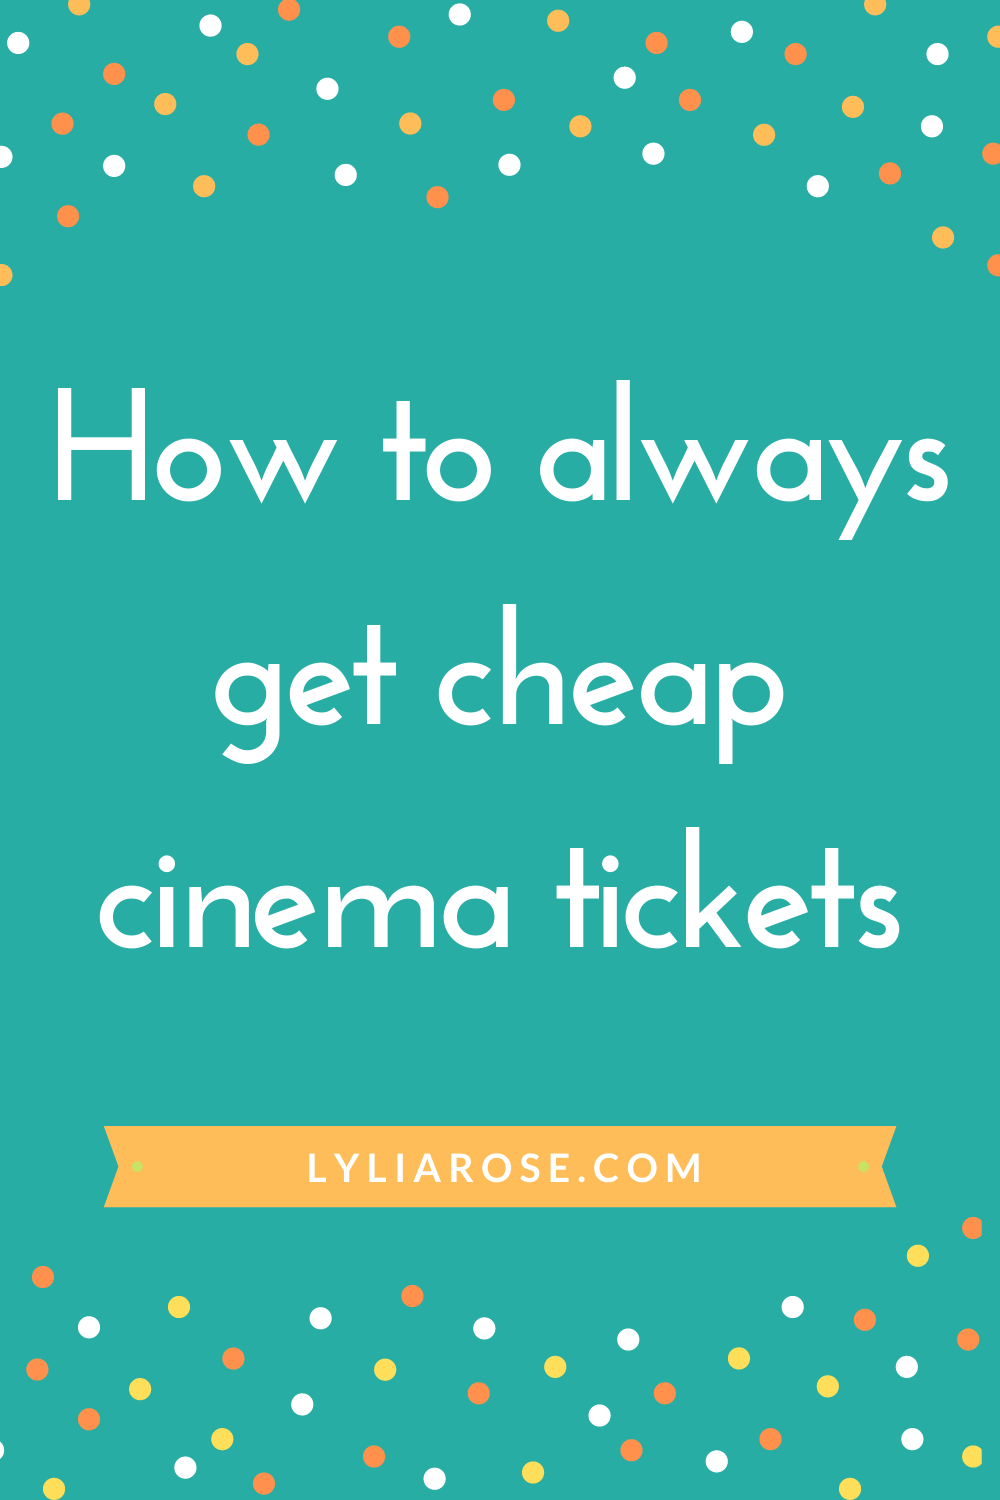 How to always get cheap cinema tickets (5)